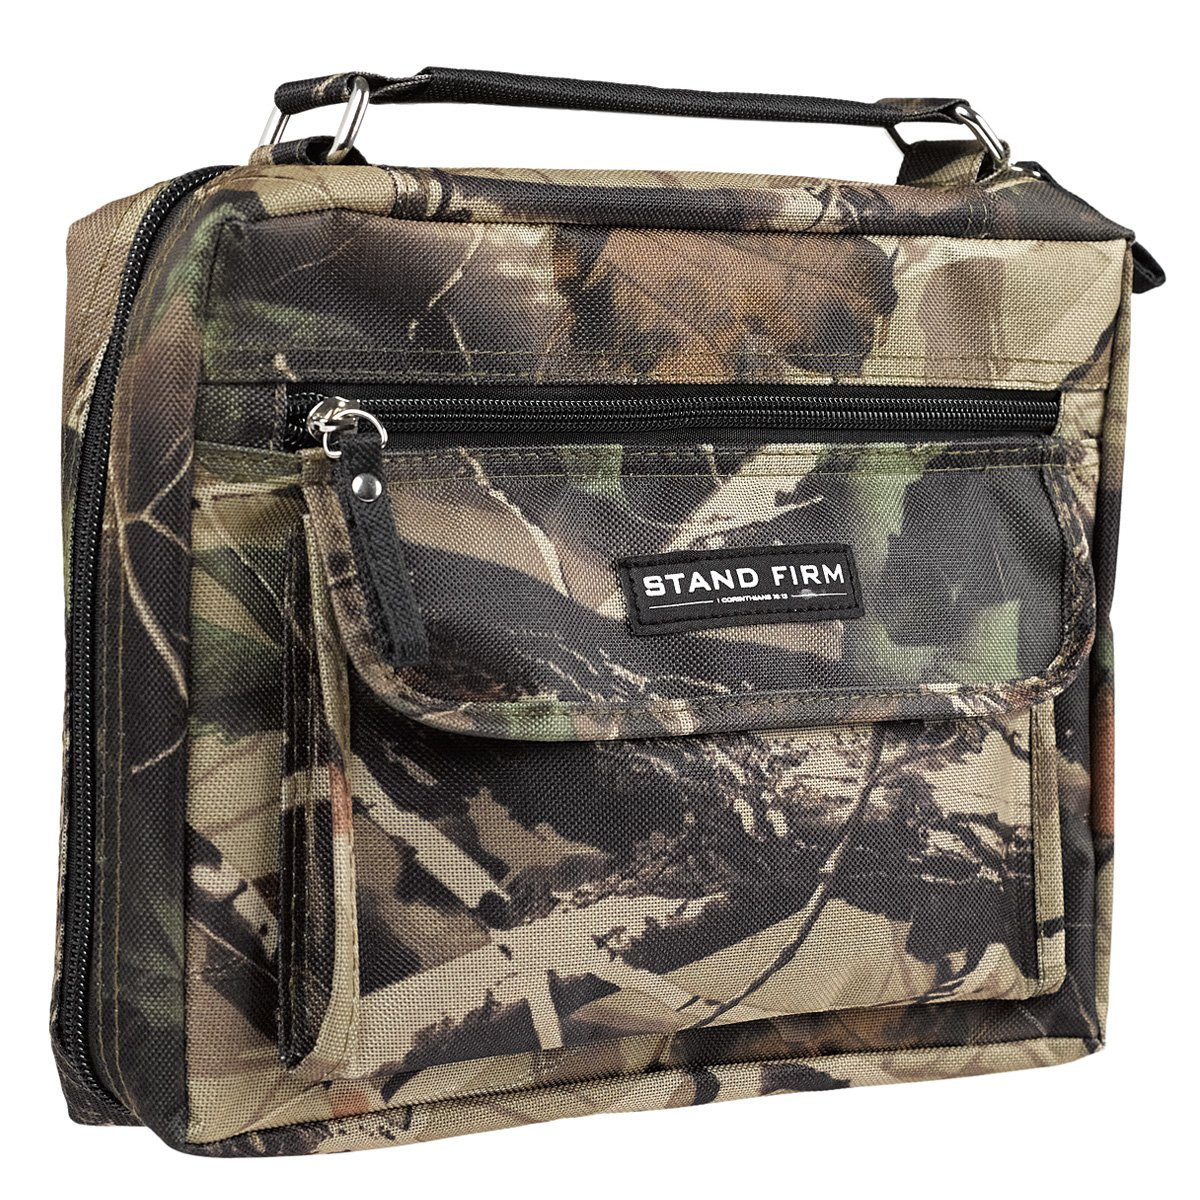 Mossy Oak Camo Poly-Canvas Bible / Book Cover w/''Stand Firm'' Tag - 1 Corinthians 16:13 (Medium)